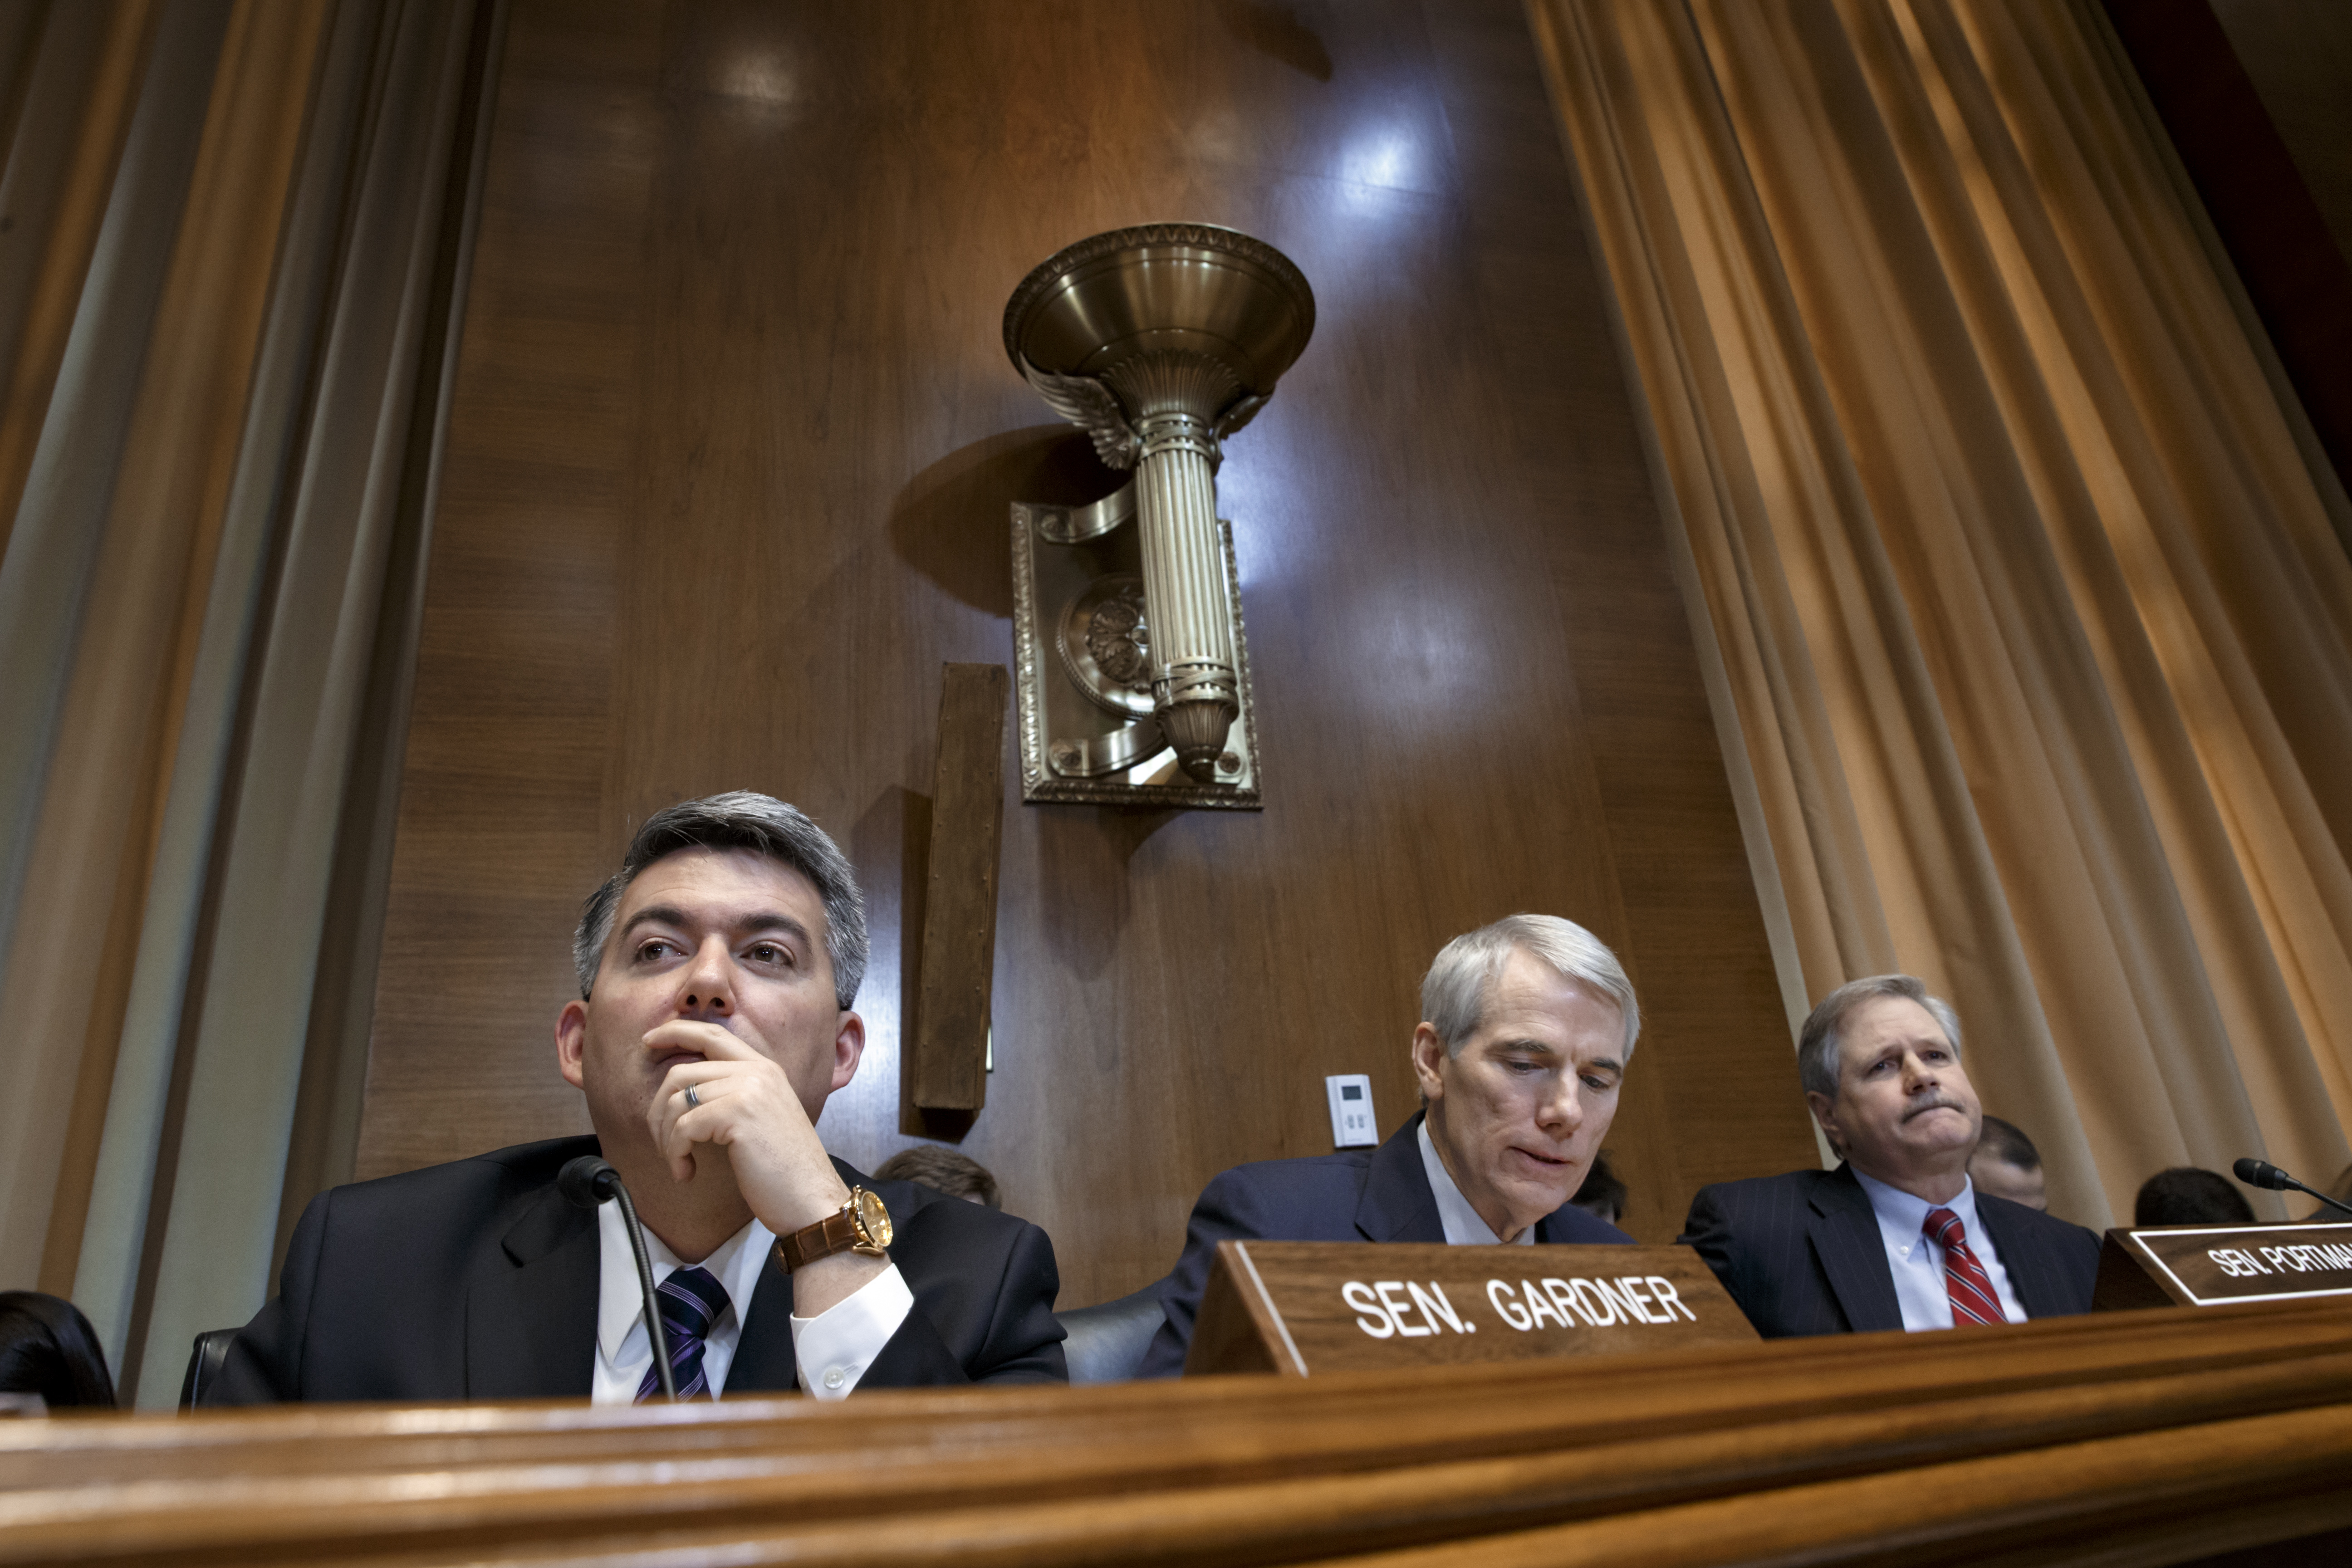 <p>From left, Senate Energy and Natural Resources Committee members Sen. Cory Gardner, R-Colo., Sen. Rob Portman, R-Ohio, and Sen. John Hoeven, R-N.D., listen to statements from members of the committee during the markup of the long-stalled Keystone XL pipeline, Jan. 8, 2015, on Capitol Hill in Washington.</p>